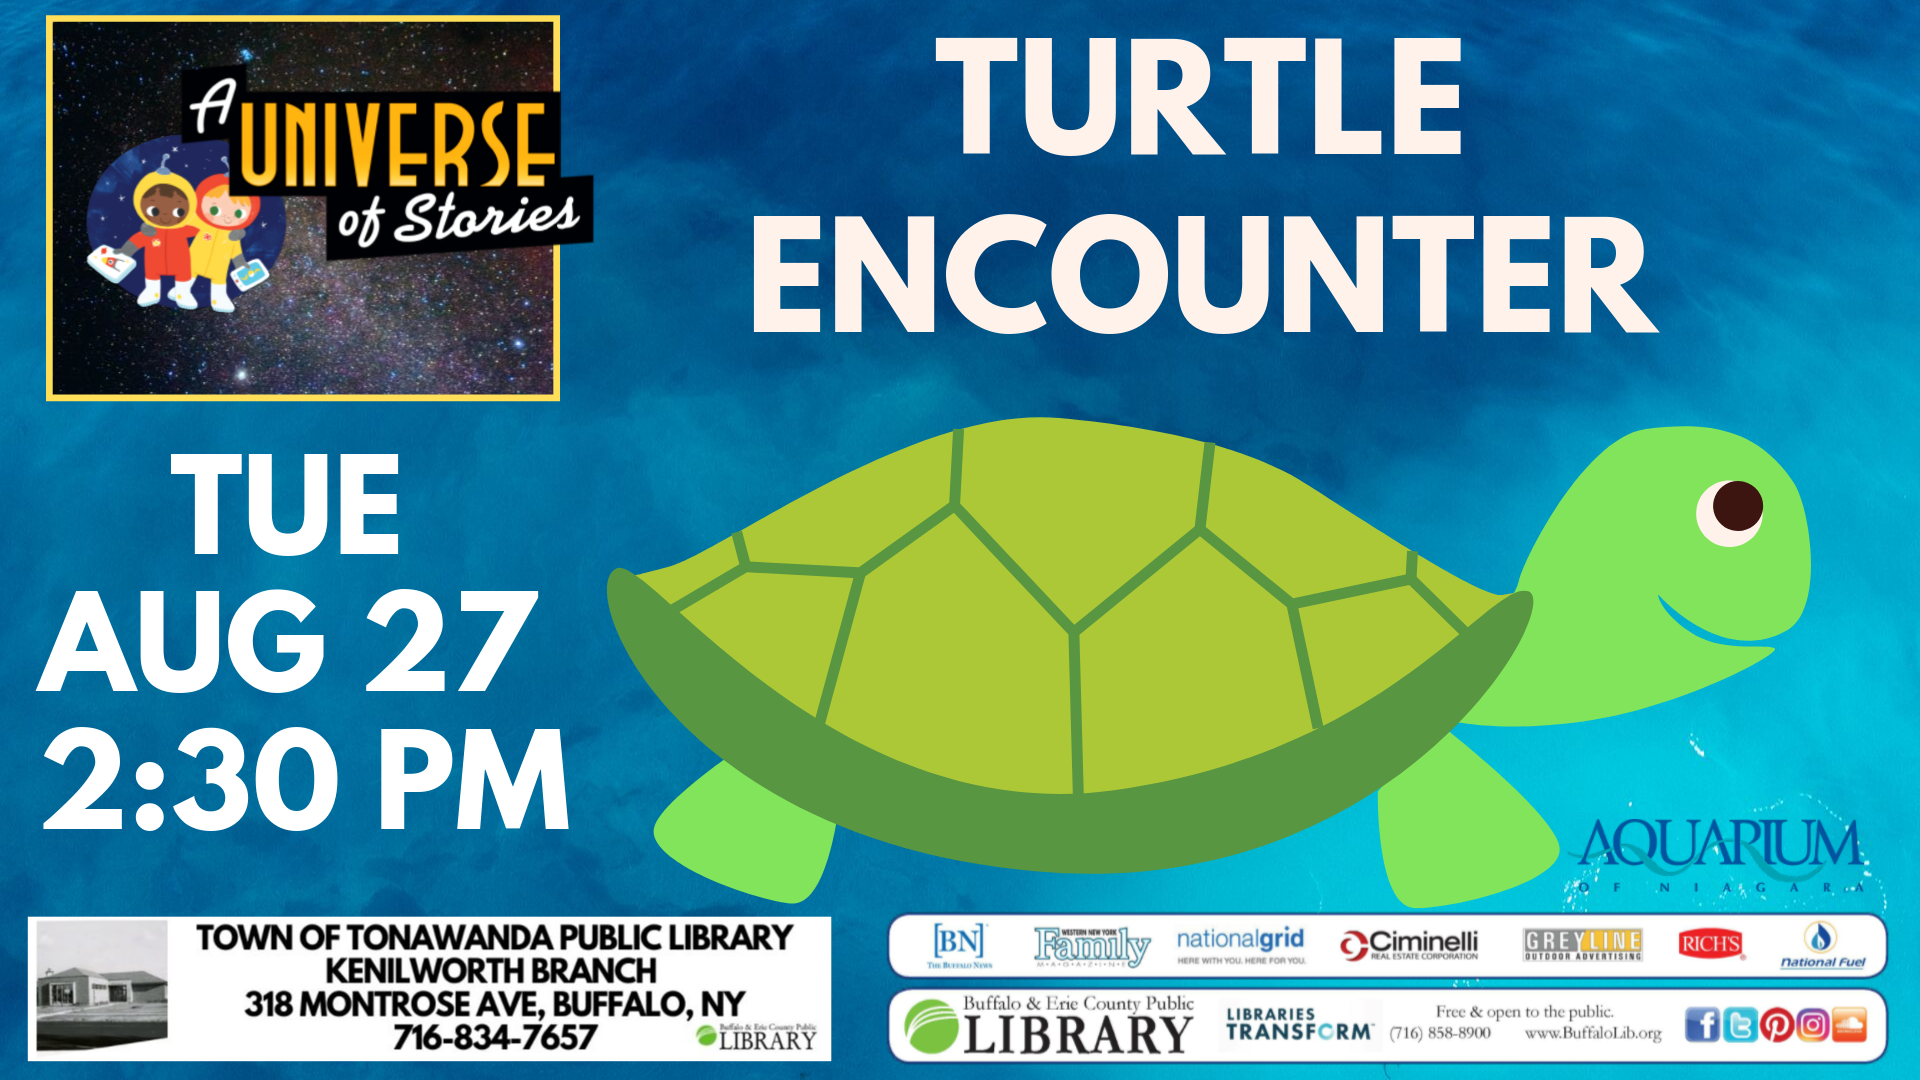 Aquarium of Niagara: Turtle Encounter